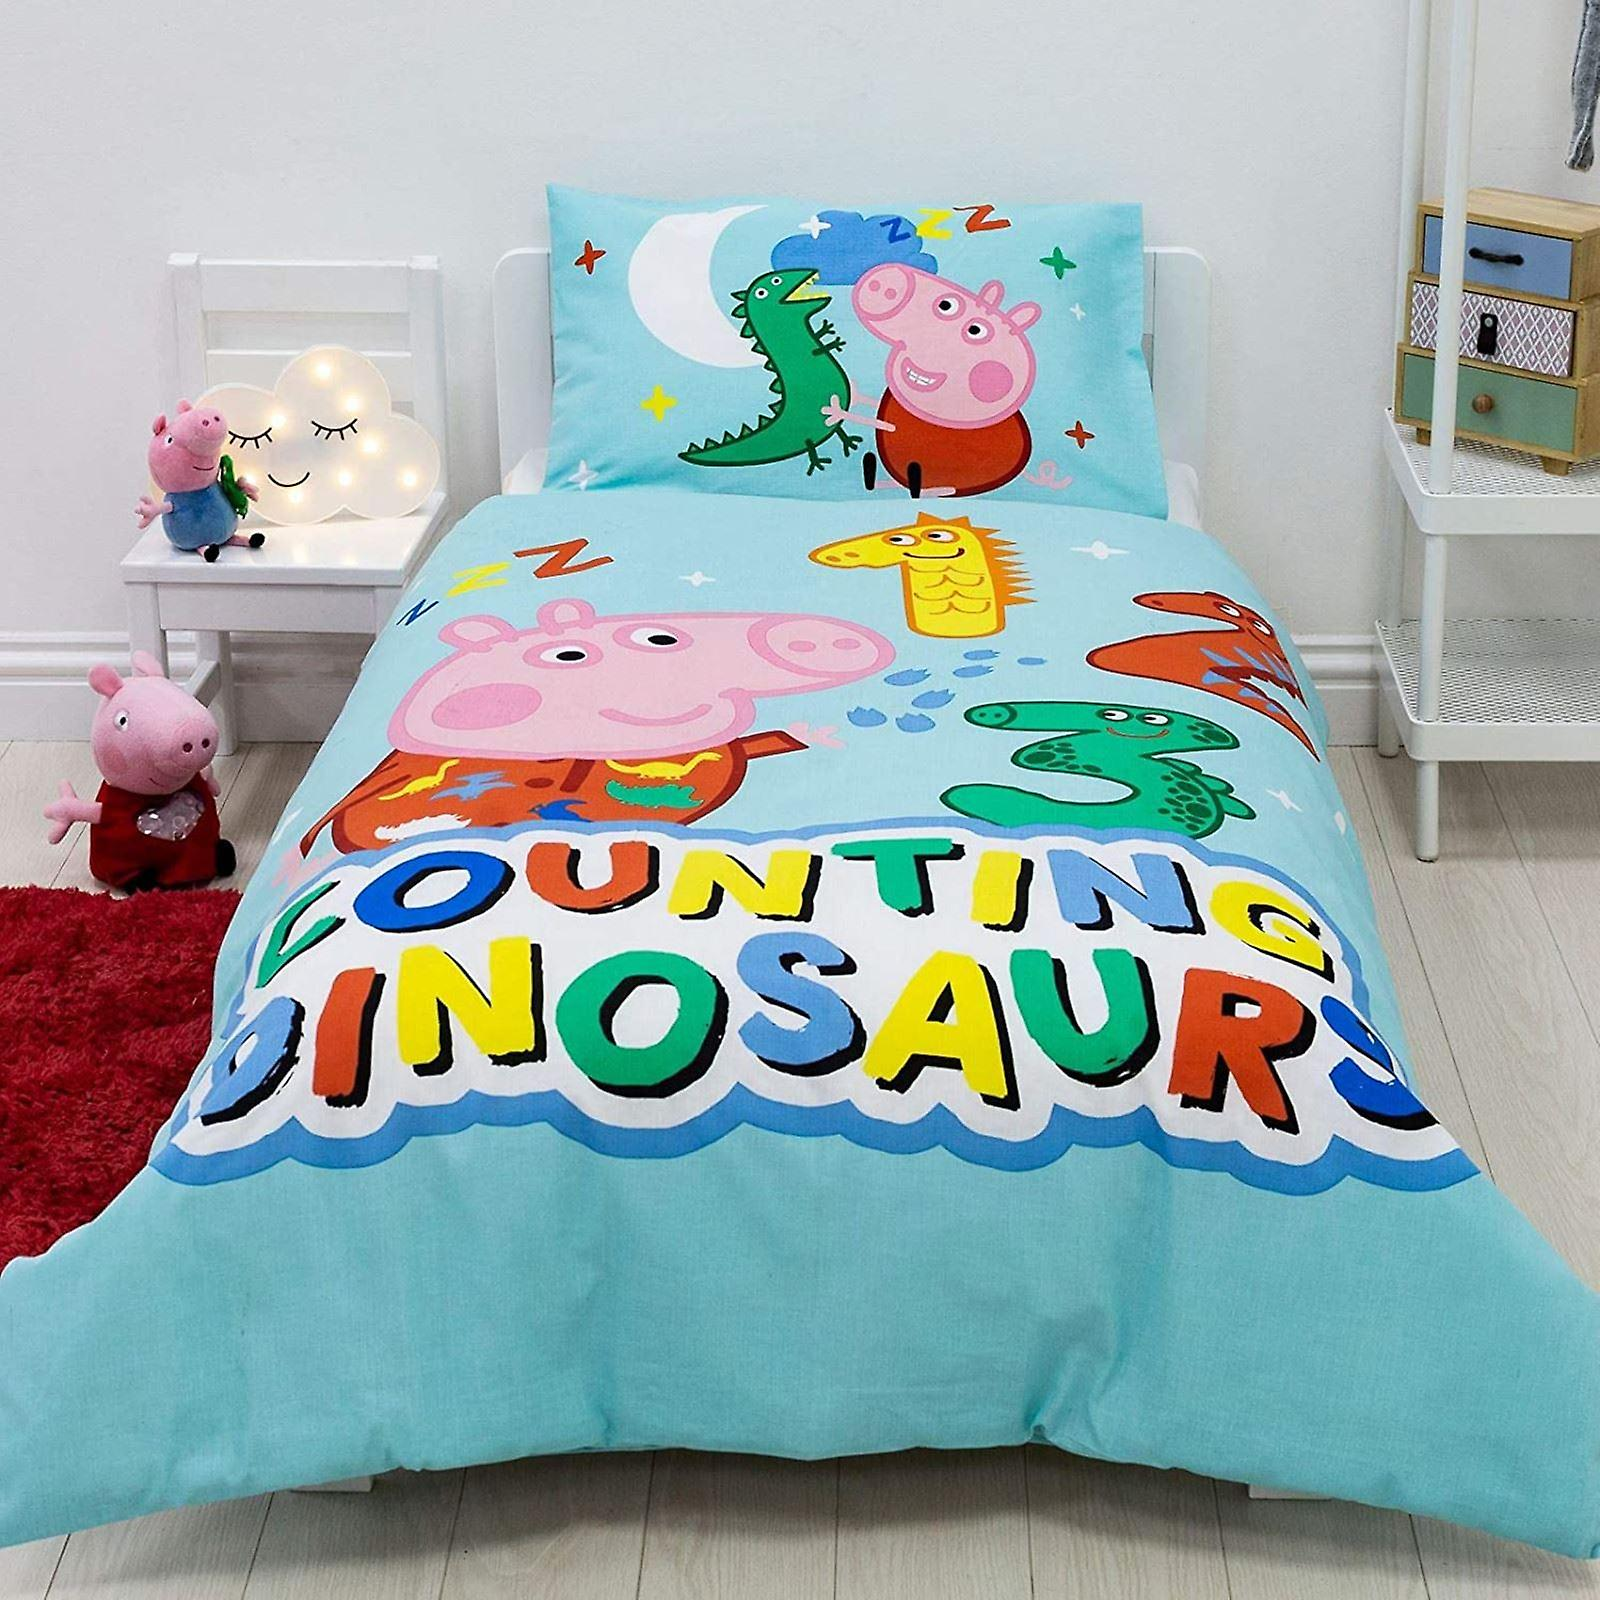 Would you like to make a pig coloring pages idea? Peppa Pig George Pig Counting Junior Duvet Cover Set Fruugo It